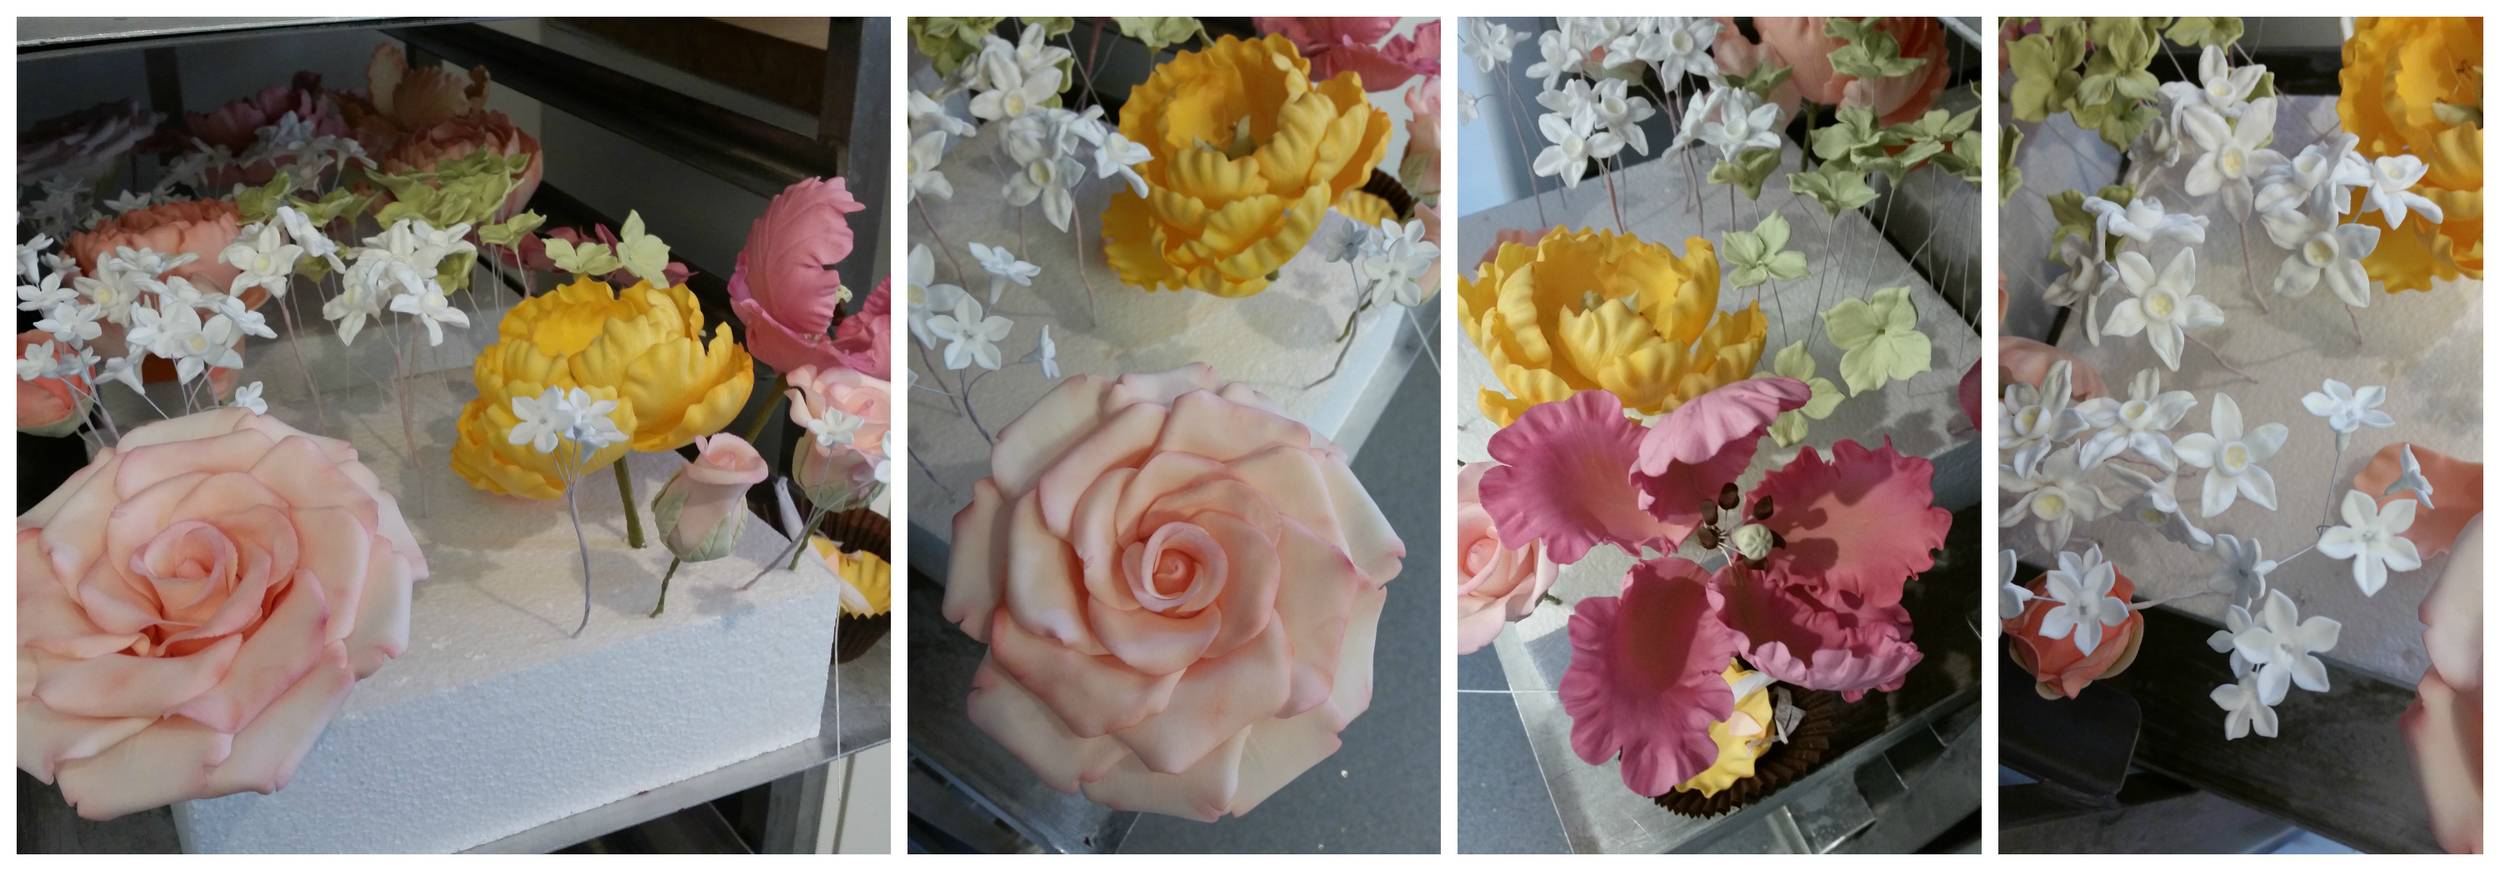 Peggy Porschen Flower Academy: the students' work